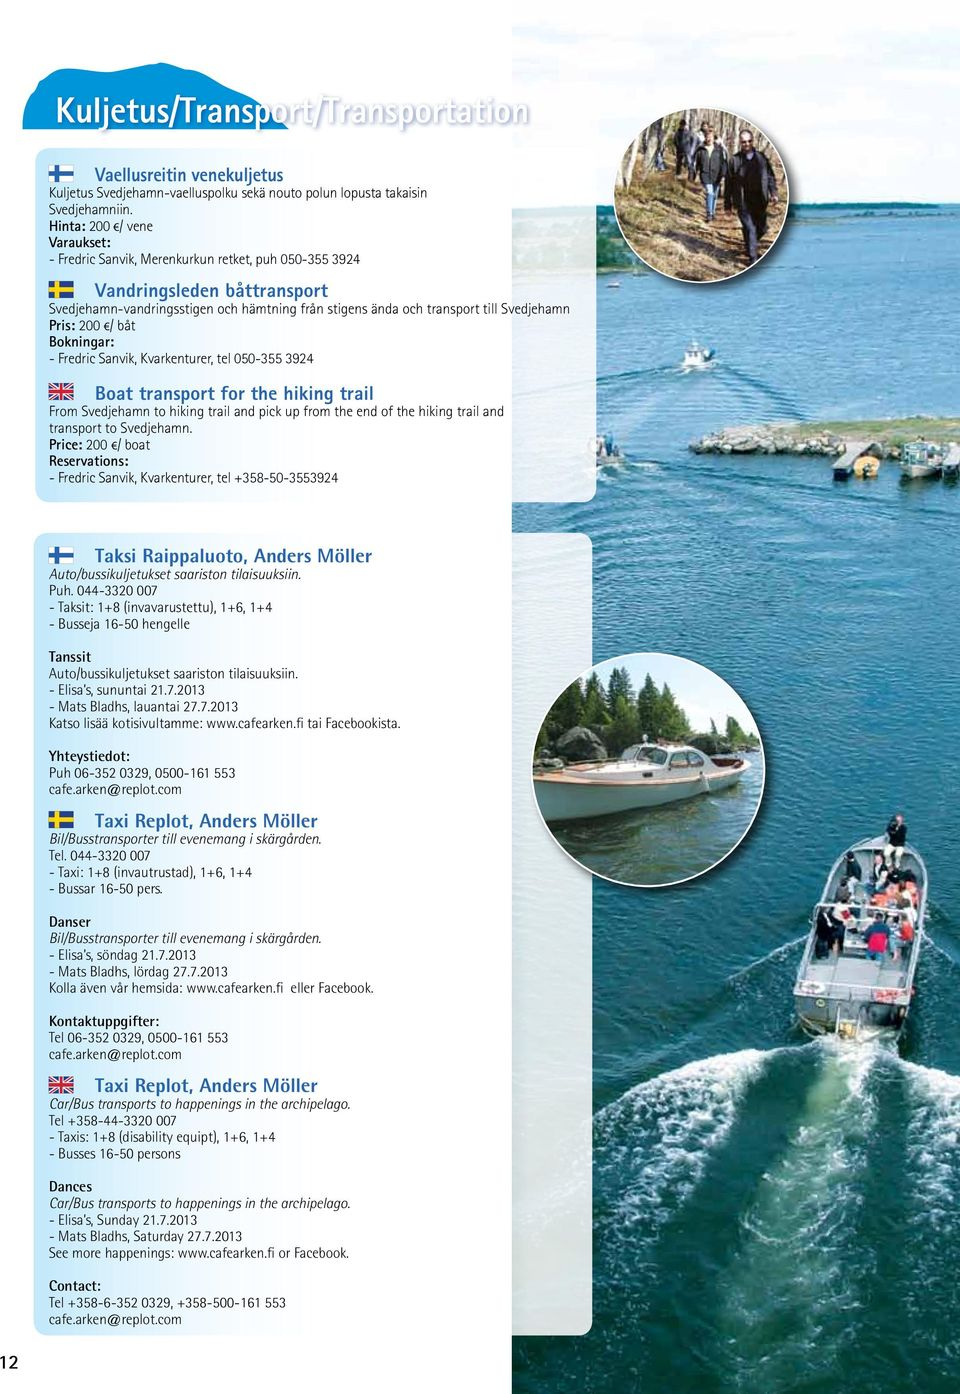 Pris: 200 / båt Bokningar: - Fredric Sanvik, Kvarkenturer, tel 050-355 3924 Boat transport for the hiking trail From Svedjehamn to hiking trail and pick up from the end of the hiking trail and